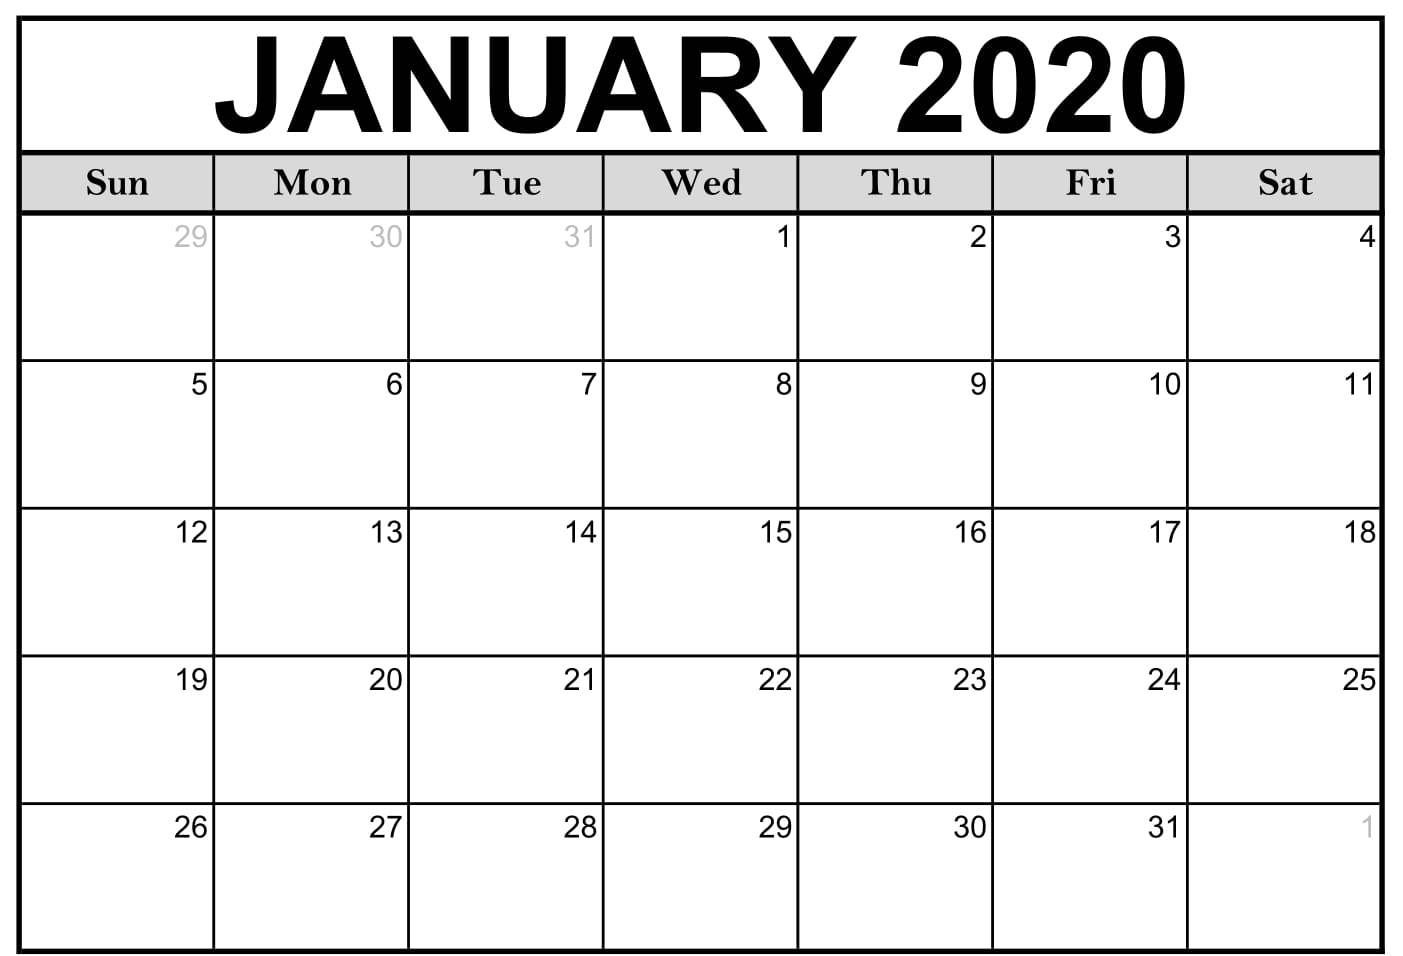 January 2020 Calendar Template | Printable Calendar Template